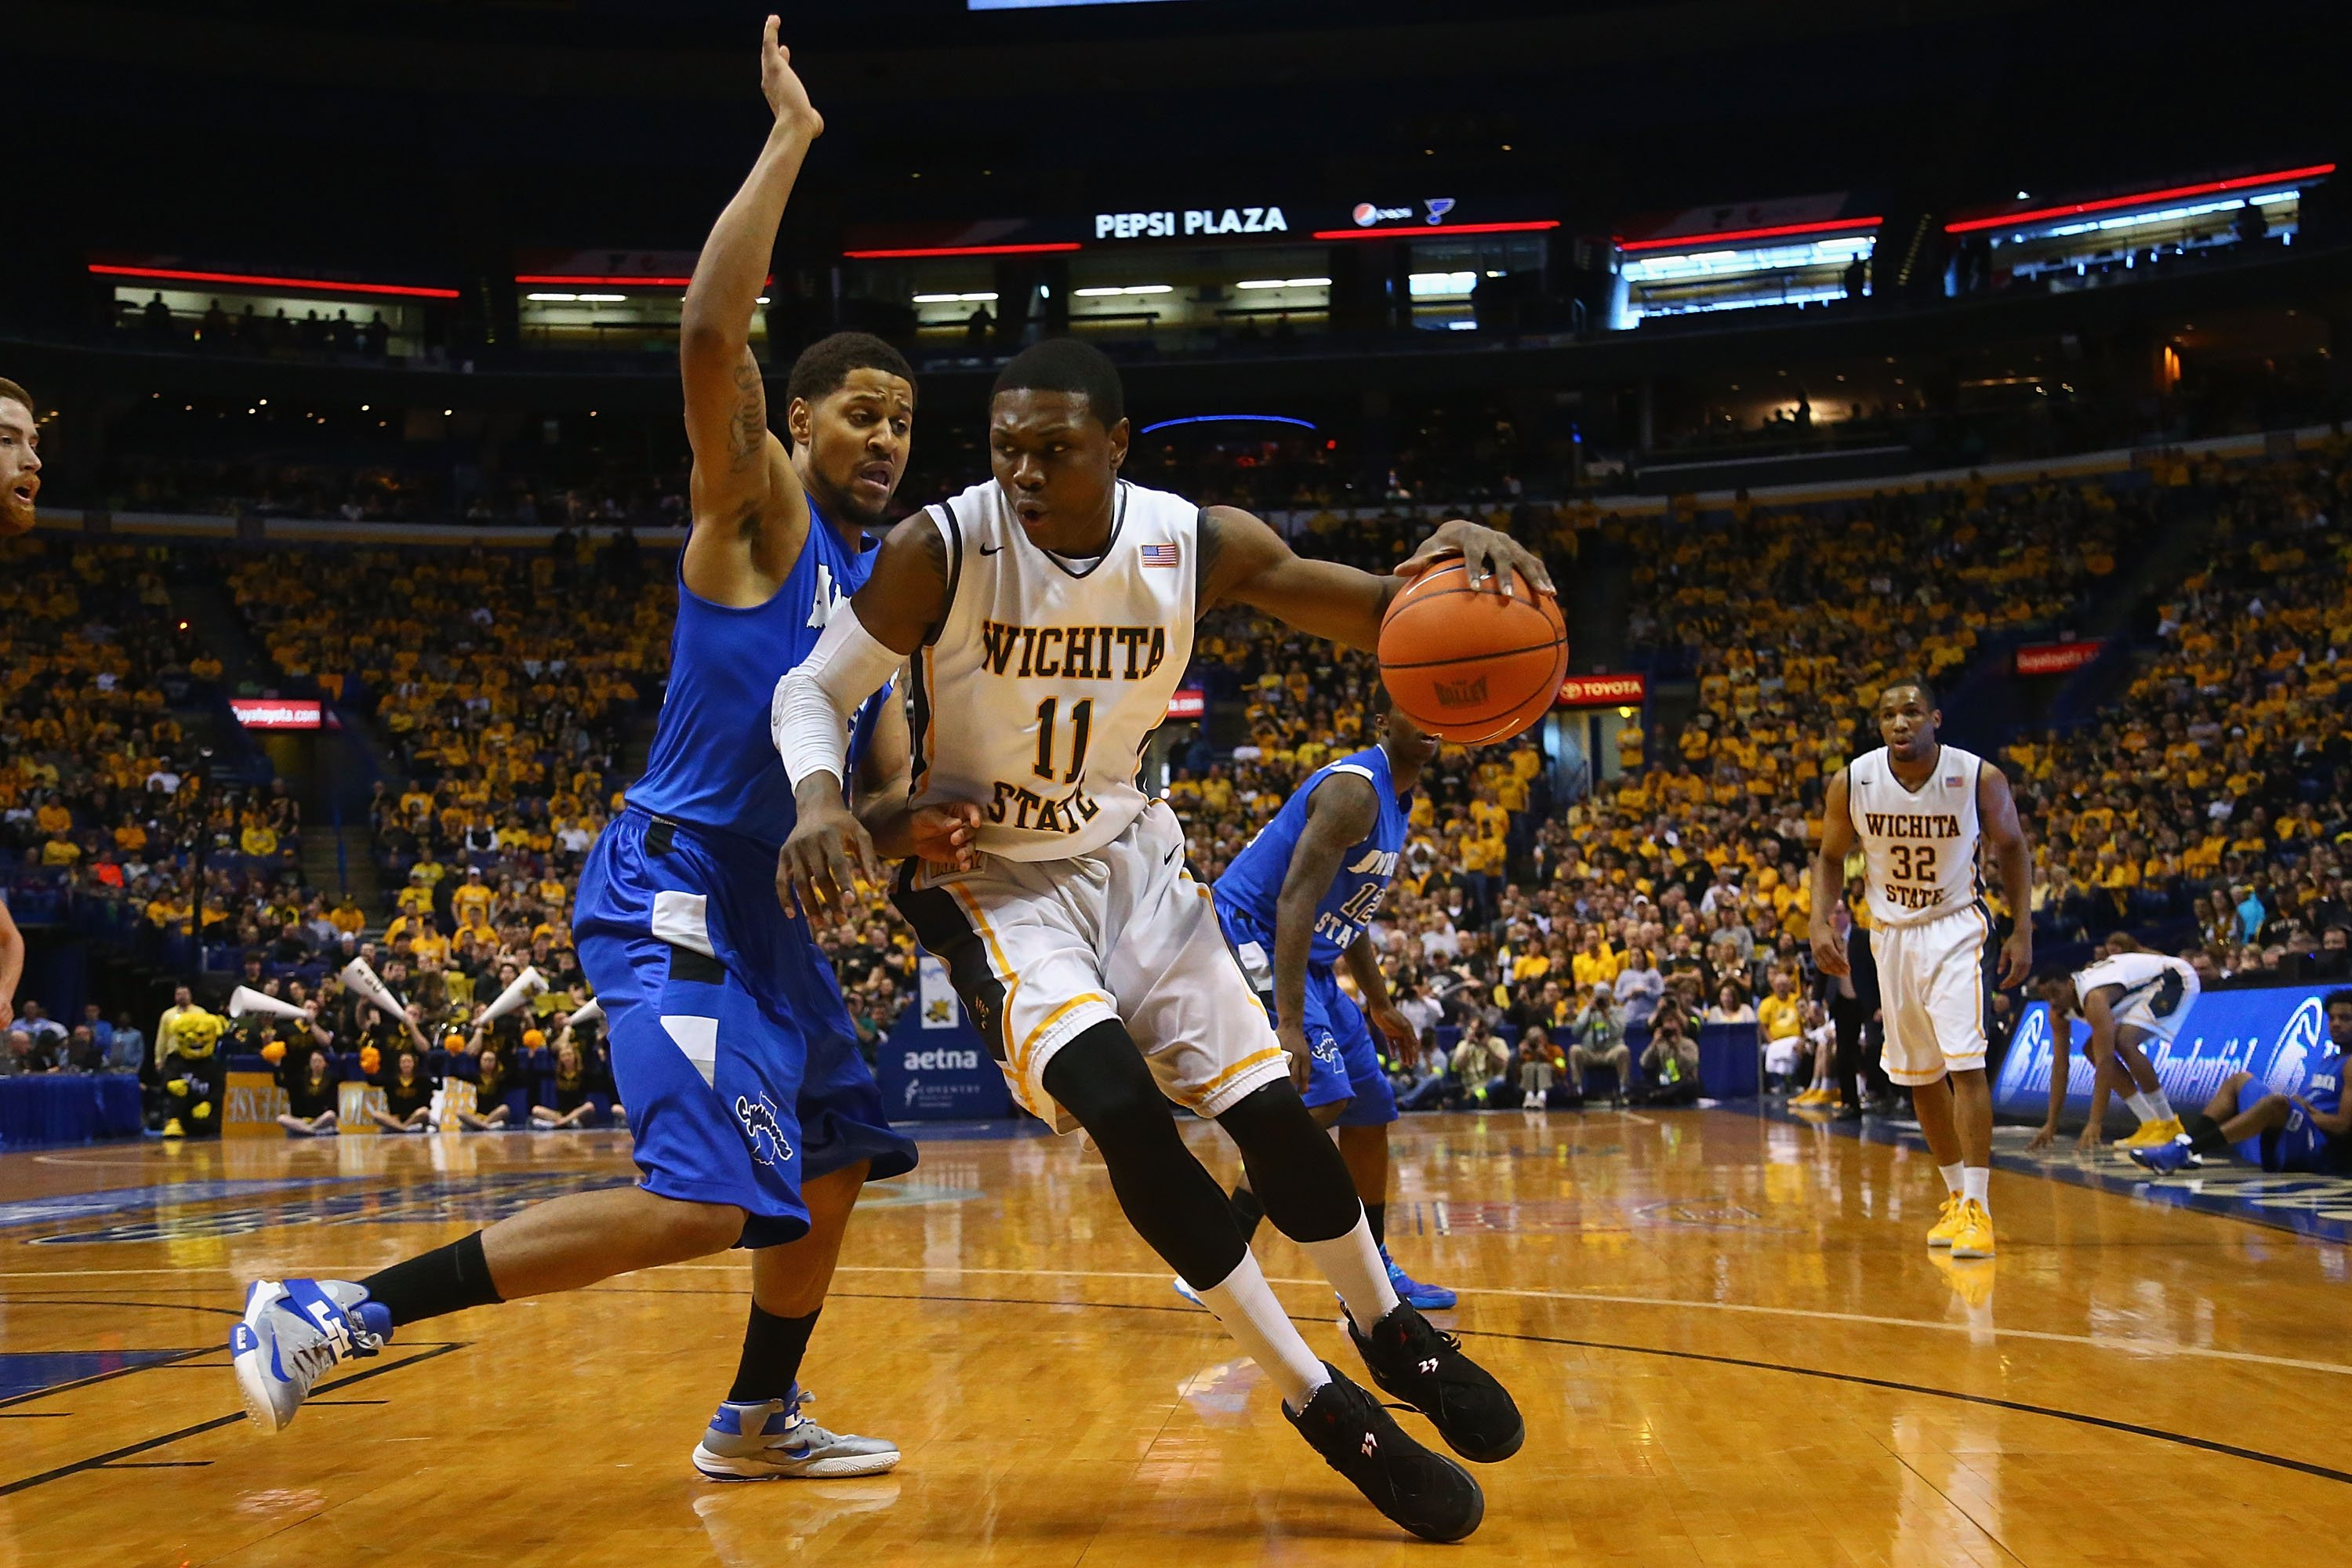 Cleanthony Early #11 of the Wichita State Shockers looks to get past Khristian Smith #32 of the Indiana State Sycamores during the MVC Basketball Tournament Championship game at the Scottrade Center on March 9, 2014 in St. Louis.